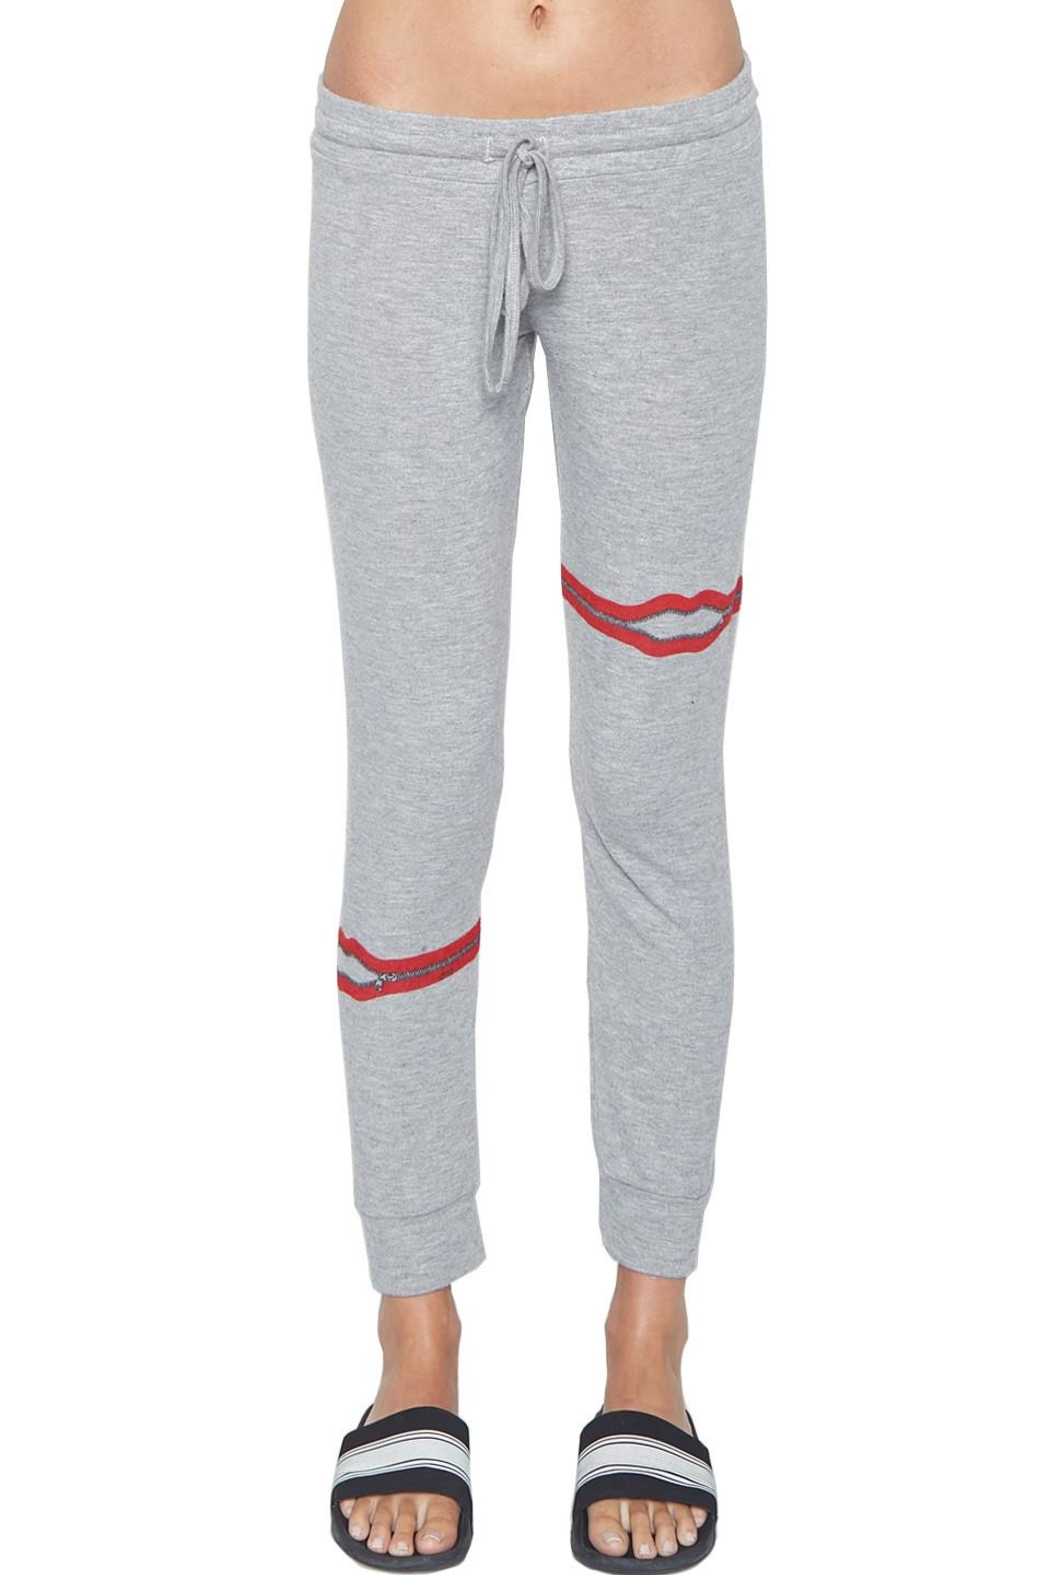 Lauren Moshi Kizzy Zipper Sweatpants - Side Cropped Image